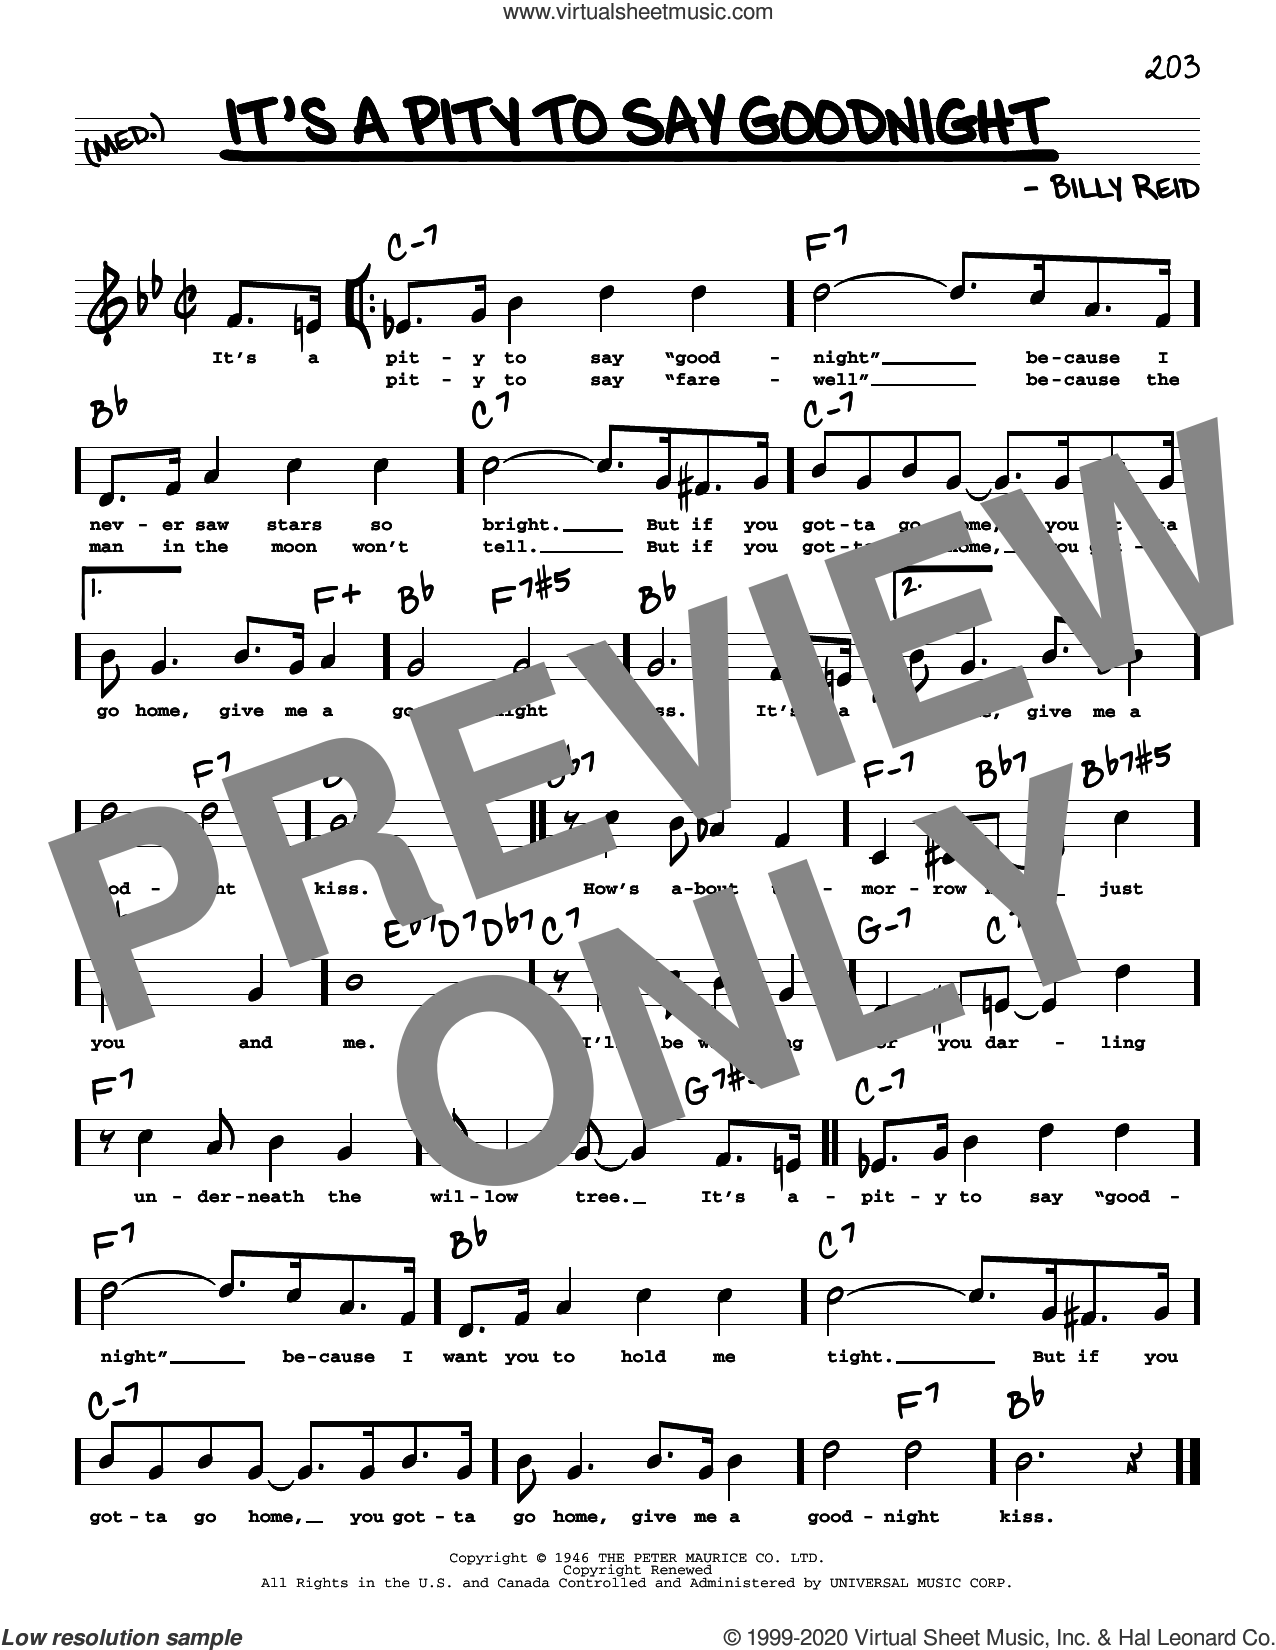 It's A Pity To Say Goodnight (High Voice) sheet music for voice and other instruments (high voice) by Ella Fitzgerald and Billy Reid, intermediate skill level